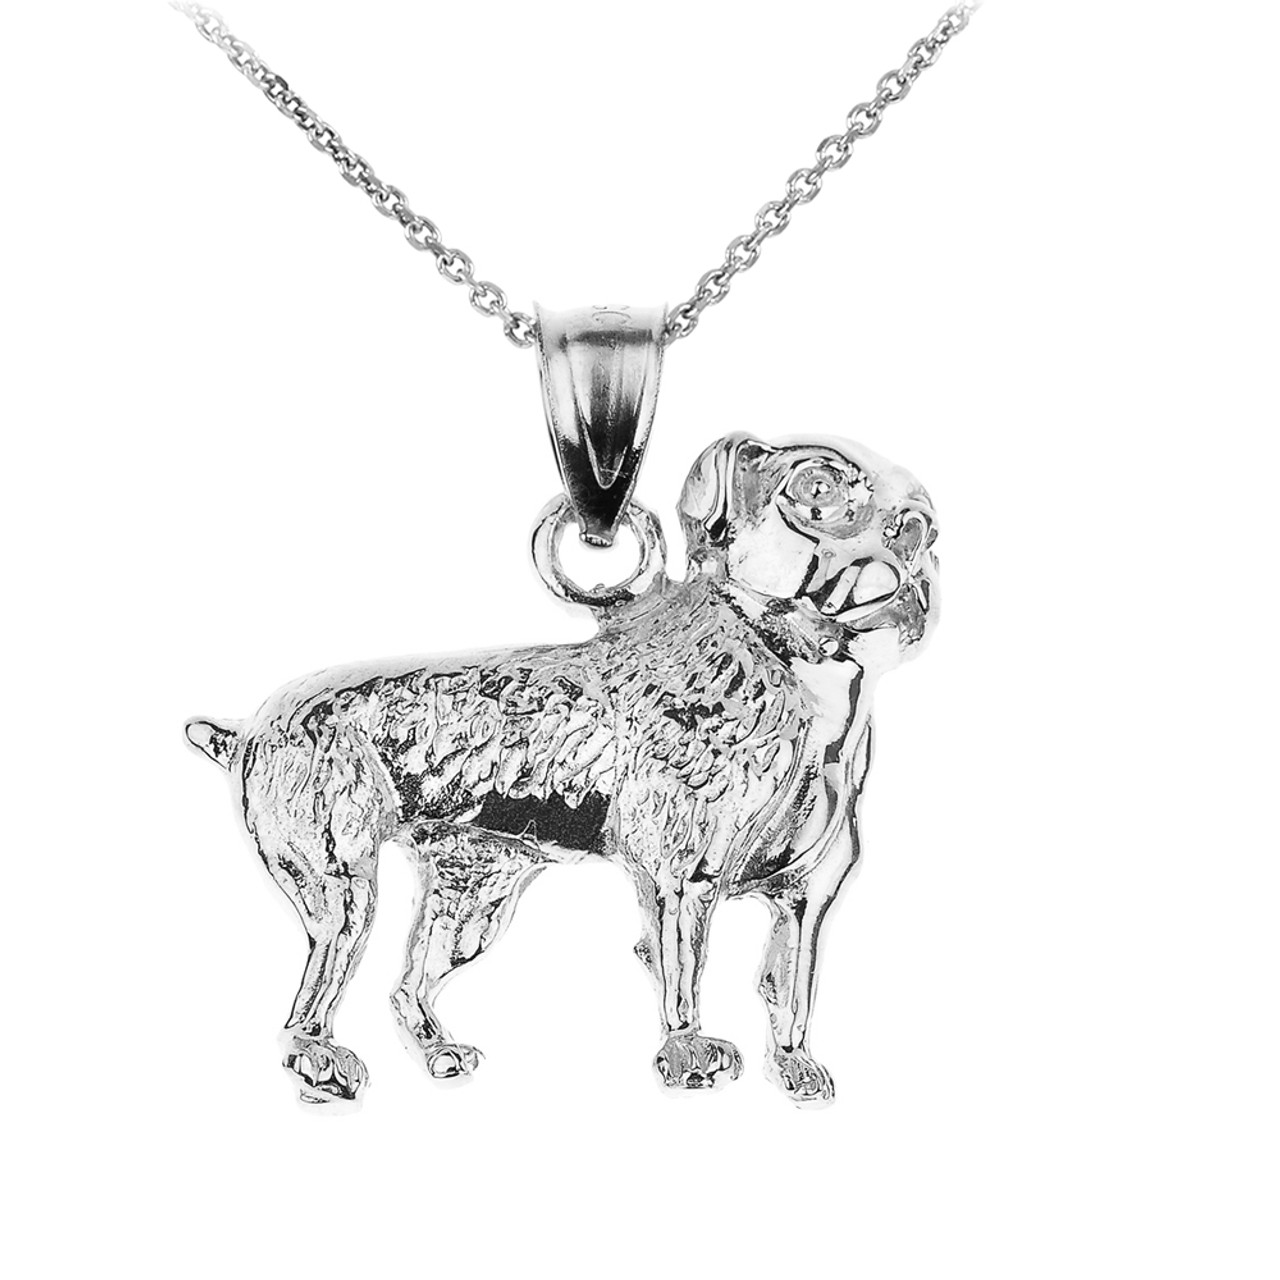 silver dog pendant charm three necklace yorkie dimensional sterling animal